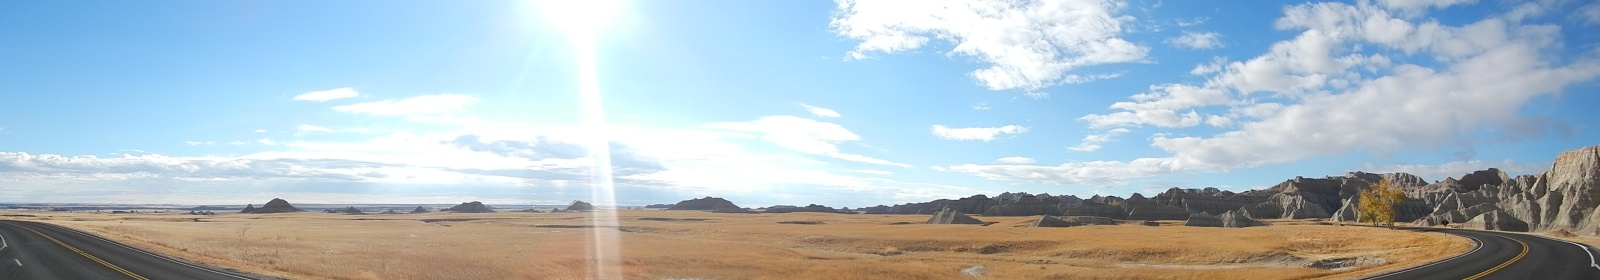 Panoramic shot of the Badlands